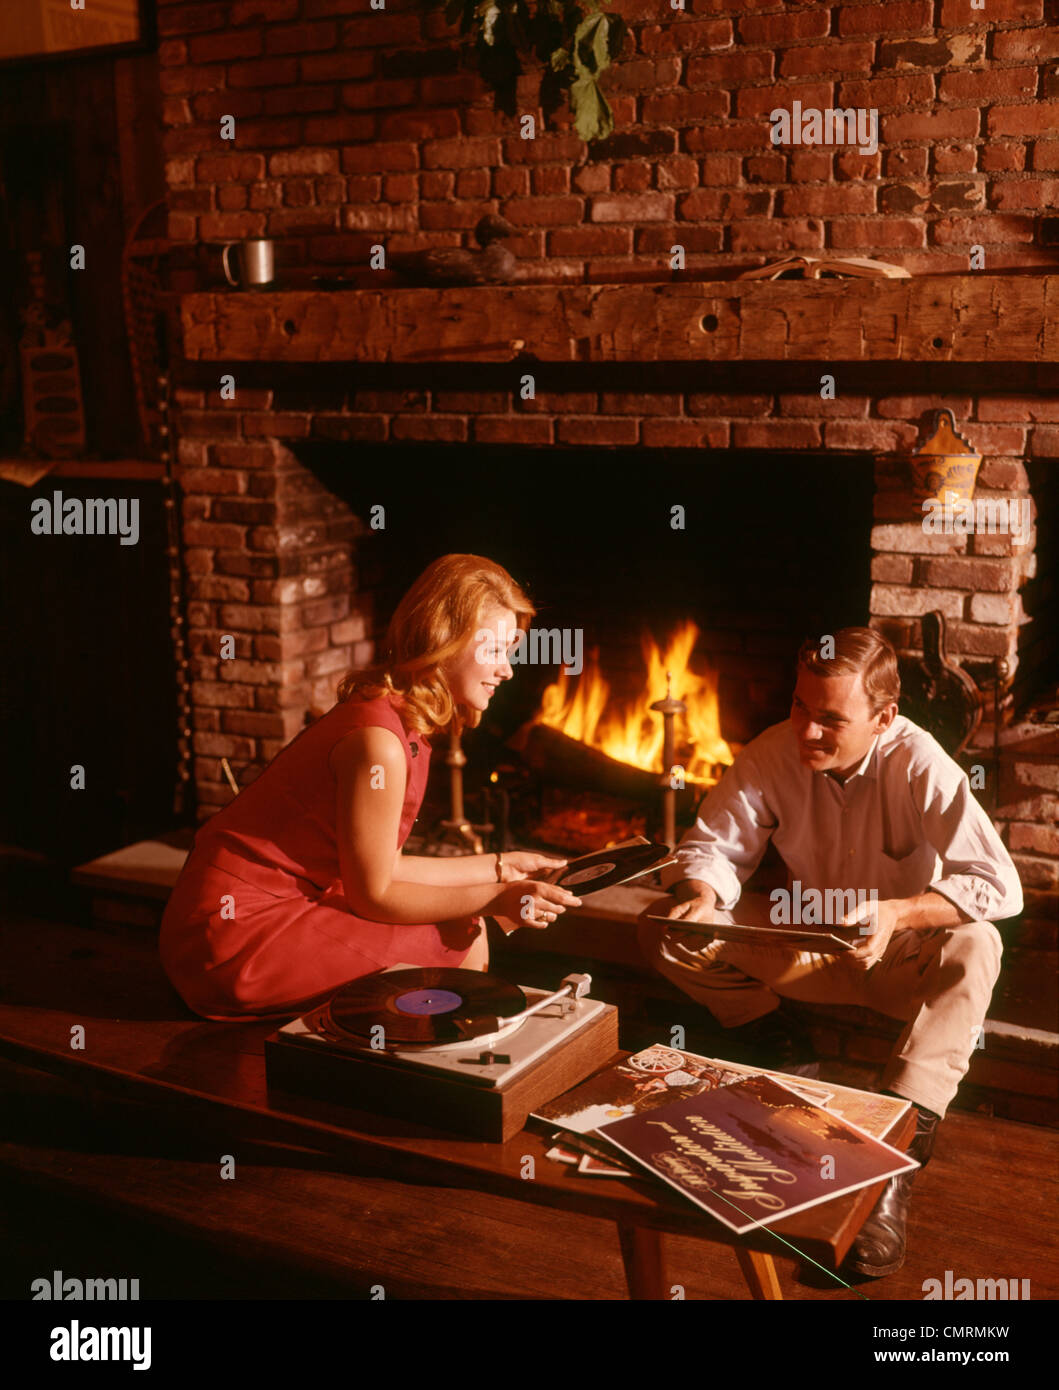 1960 1960s 1970 1970s couple man woman living room fireplace